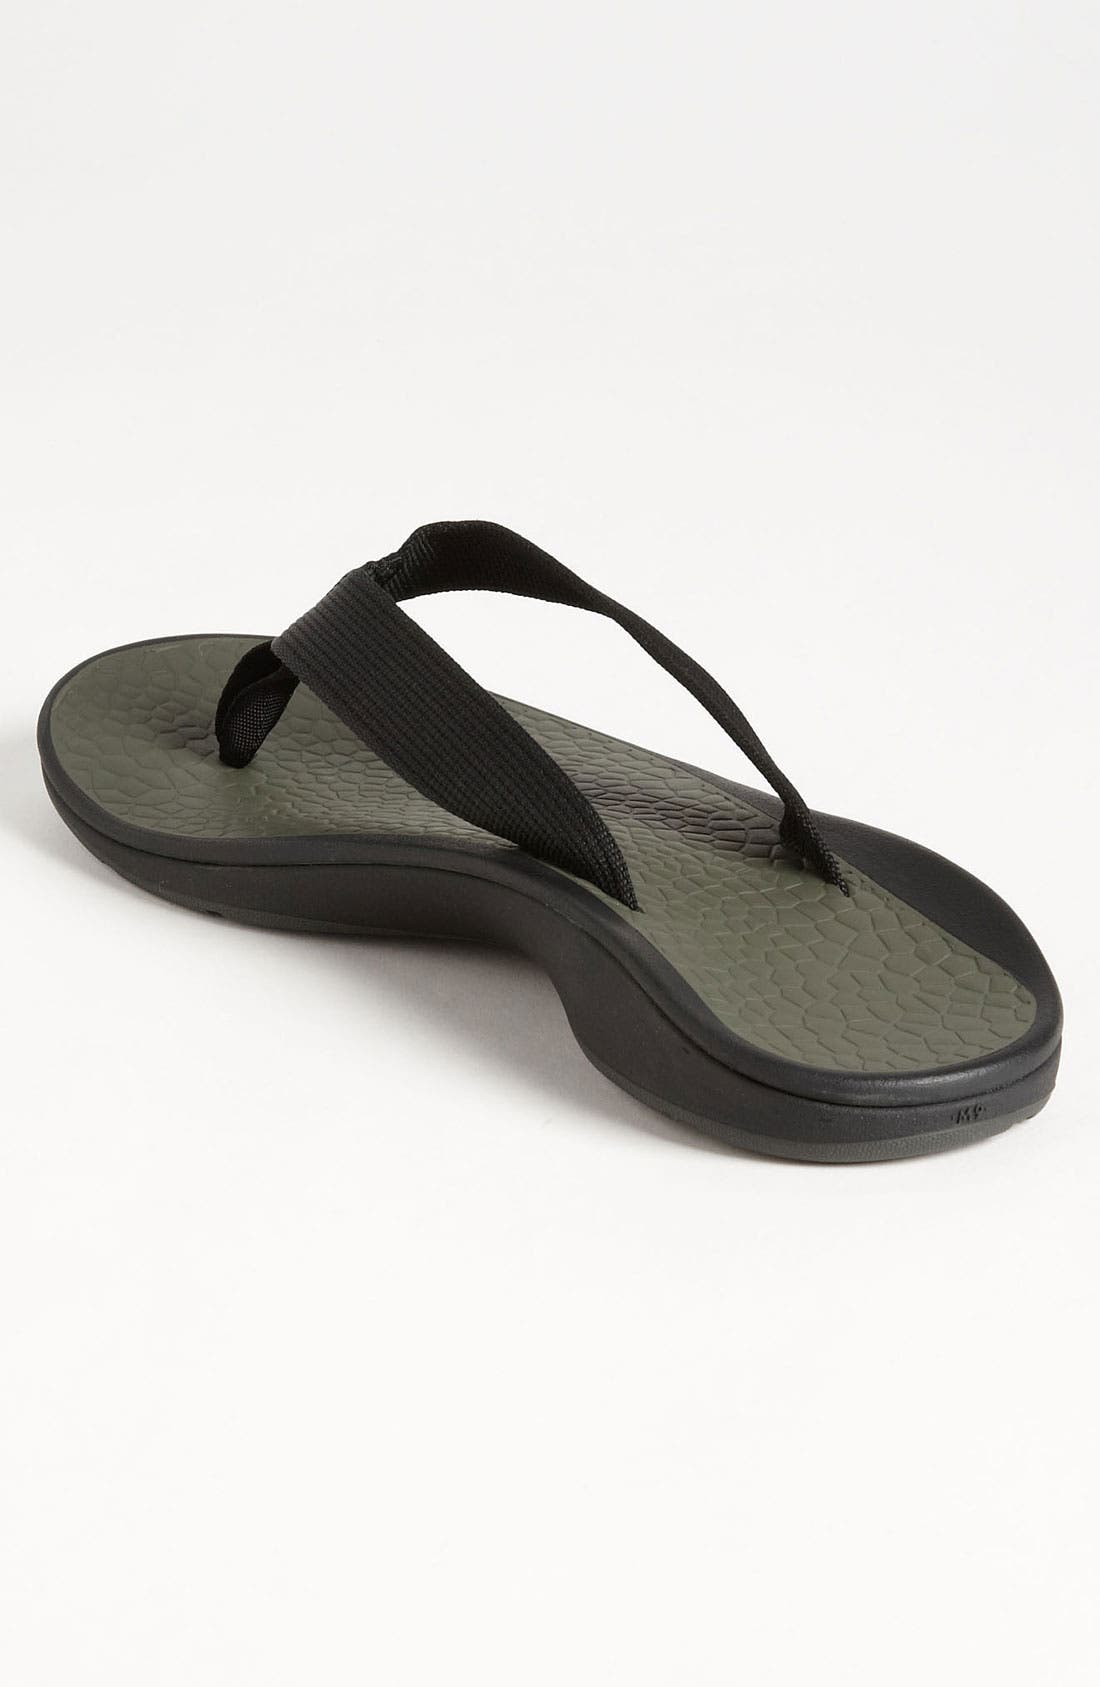 Alternate Image 2  - Chaco 'Fathom' Flip Flop (Men)